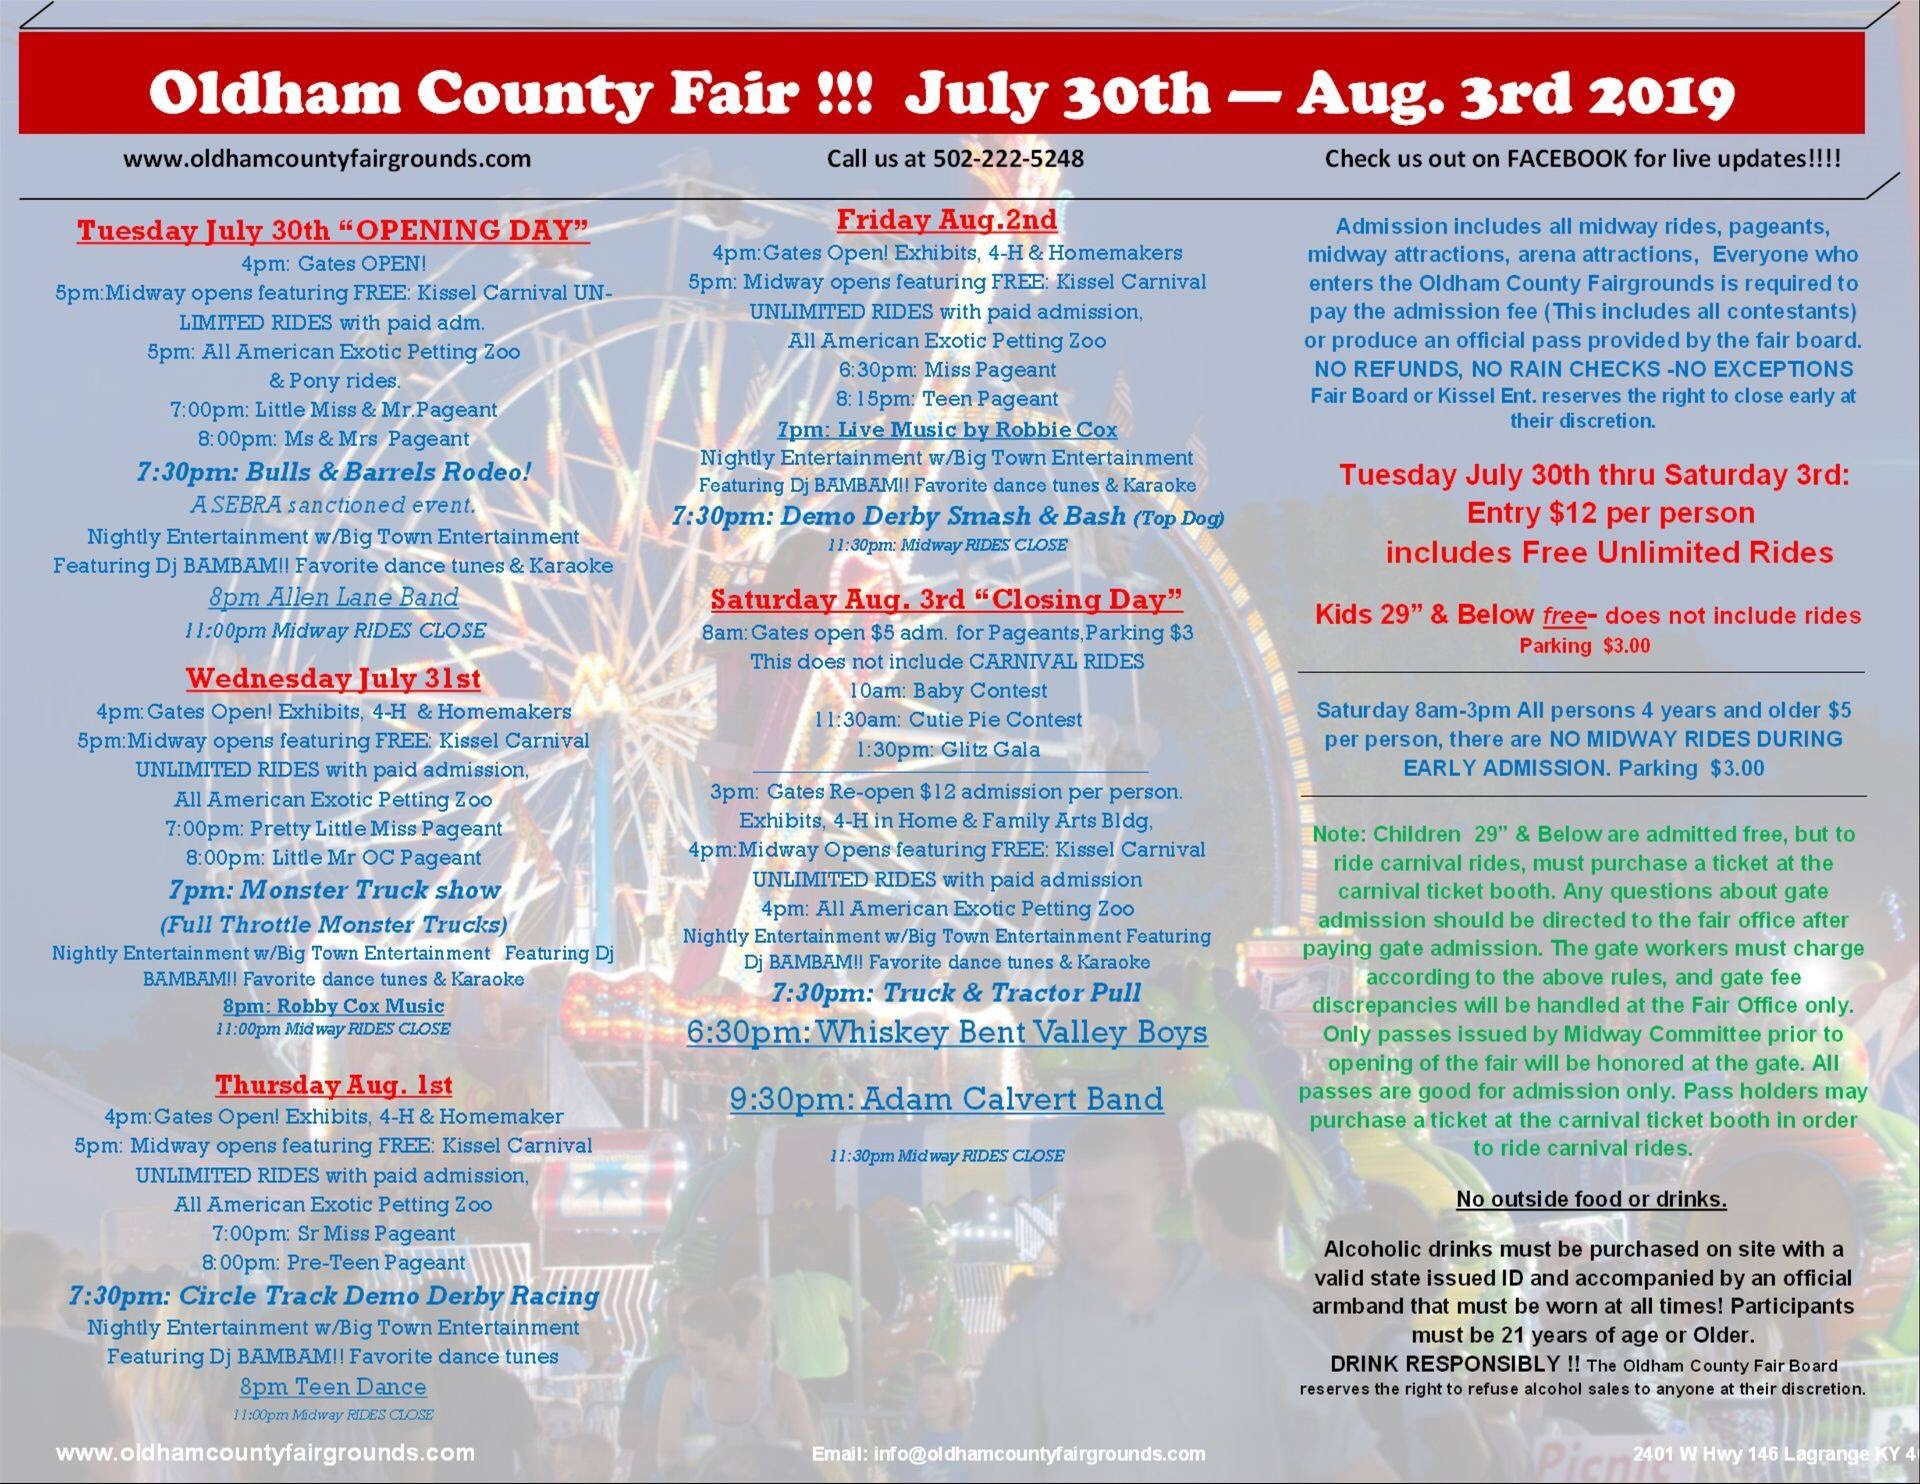 Giveaway** Win 4 Tickets to the Oldham County Fair